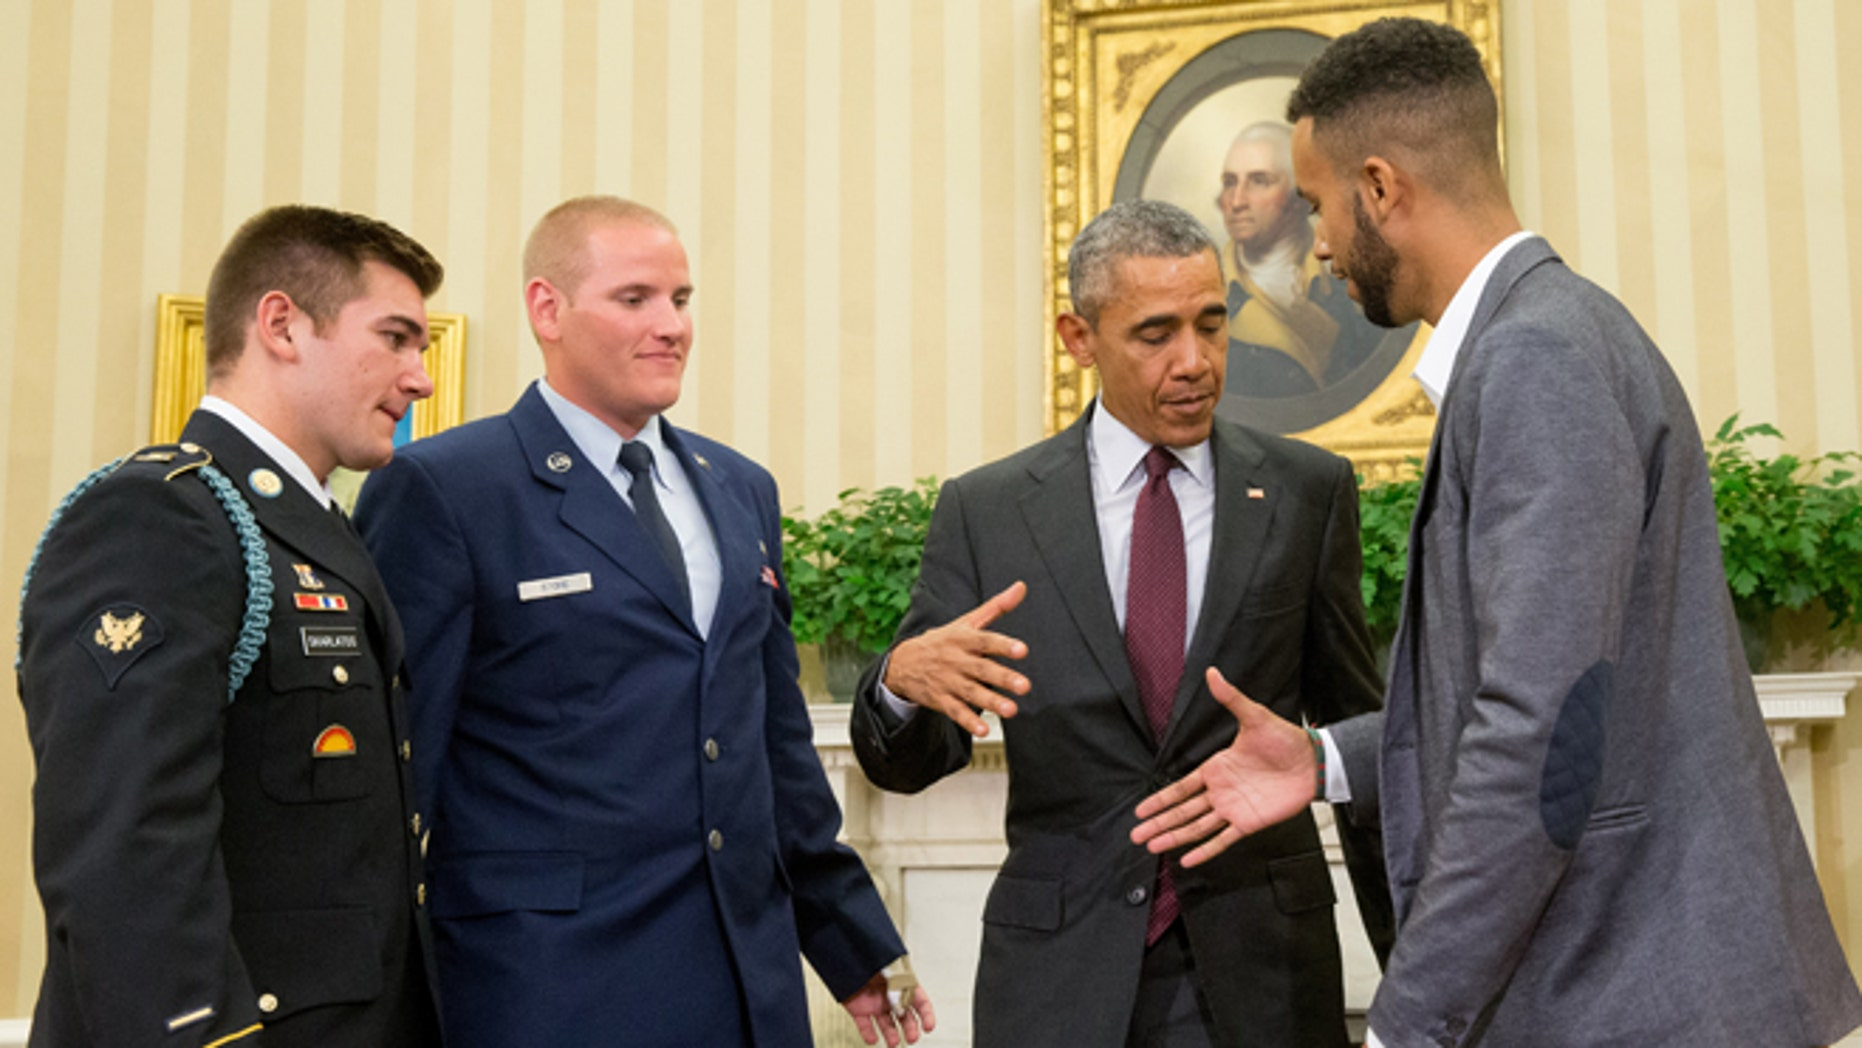 Sept. 17, 2015: President Obama meets with, from left, Oregon National Guardsman Alek Skarlatos, Air Force Airman 1st Class Spencer Stone, and Anthony Sadler, in the Oval Office of the White House in Washington.